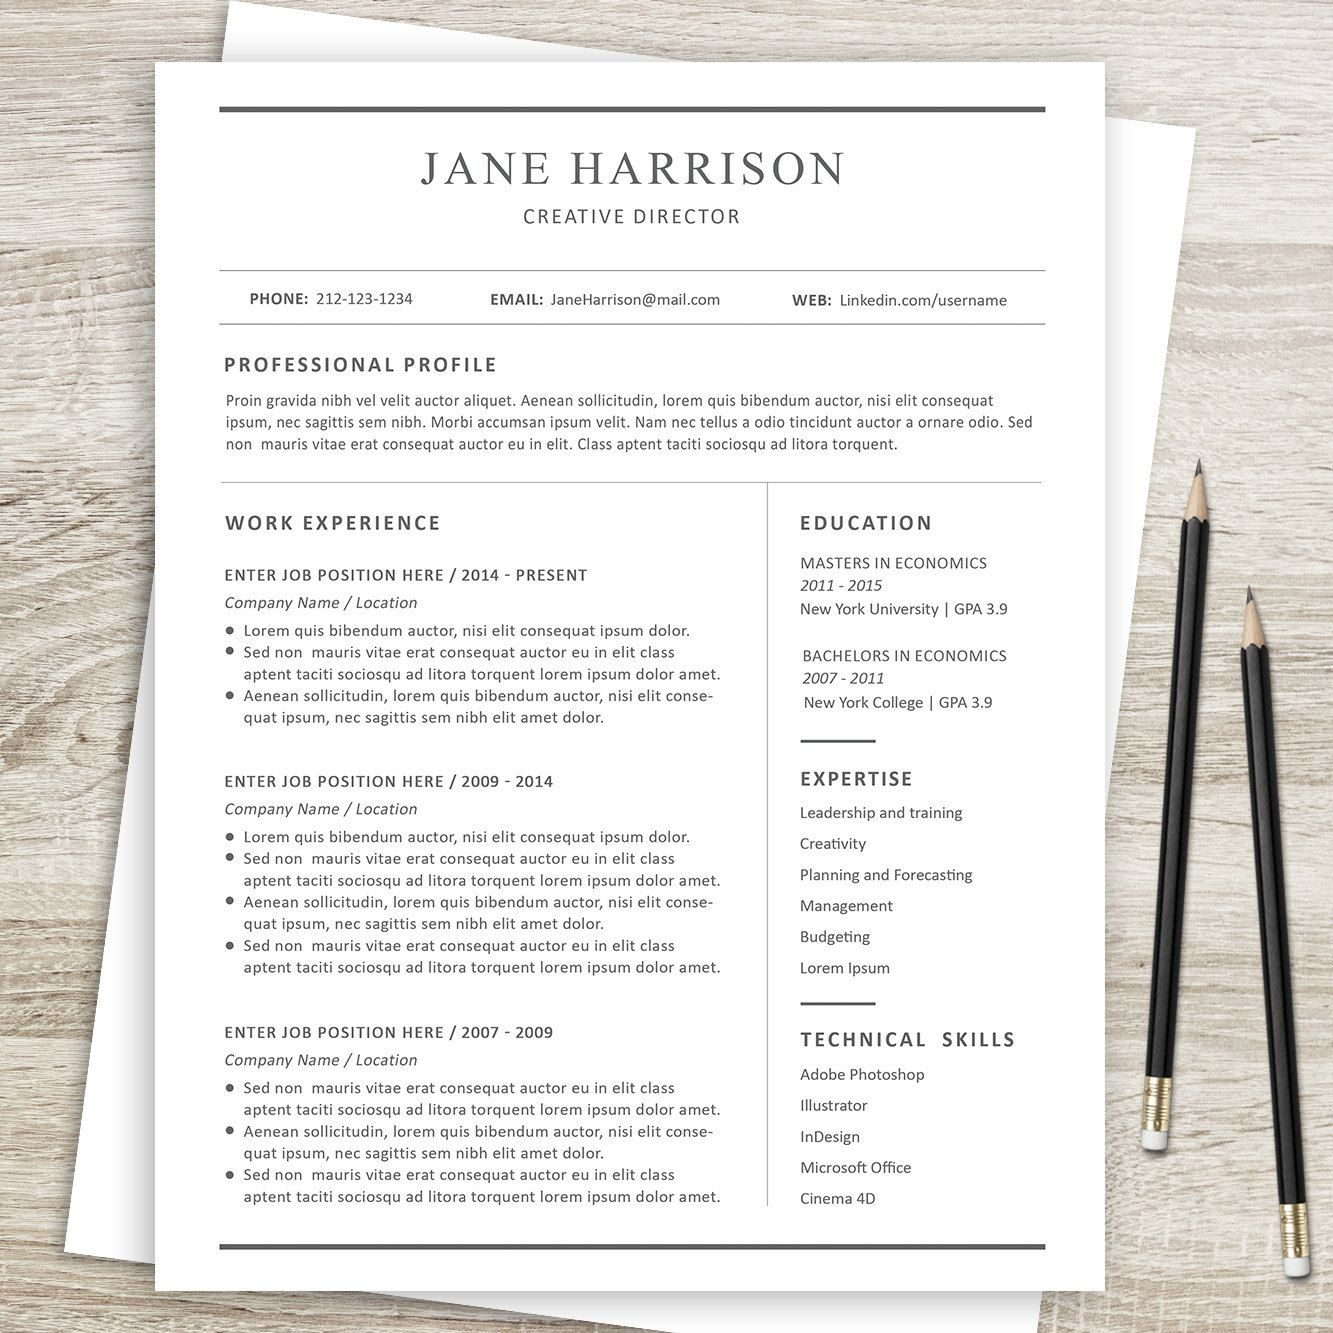 resume cover letter and reference page template professional cv a4 and us letter sizes and word format